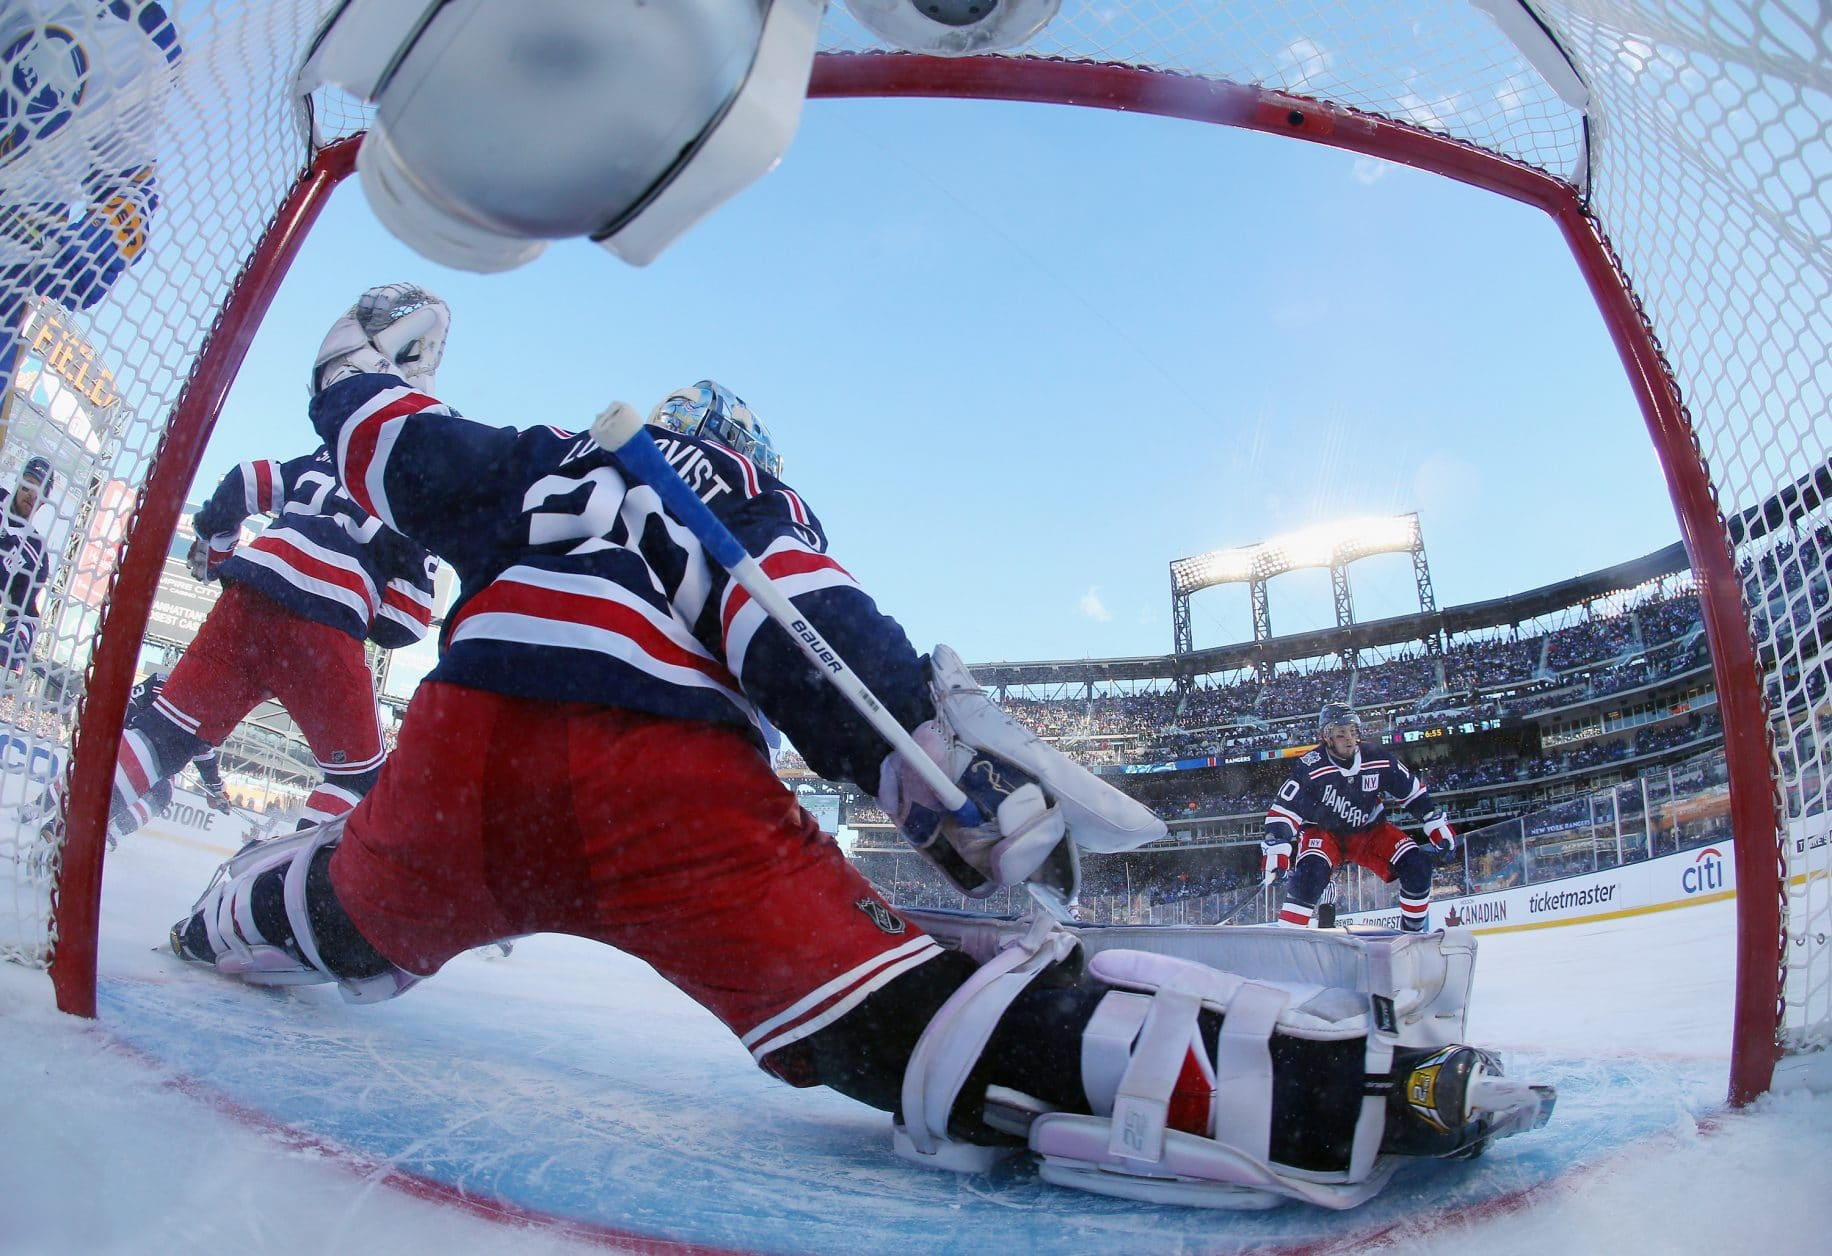 Gettyimages-900578908-new-york-rangers-report-1-10-17-lundqvist-voted-to-the-all-star-game